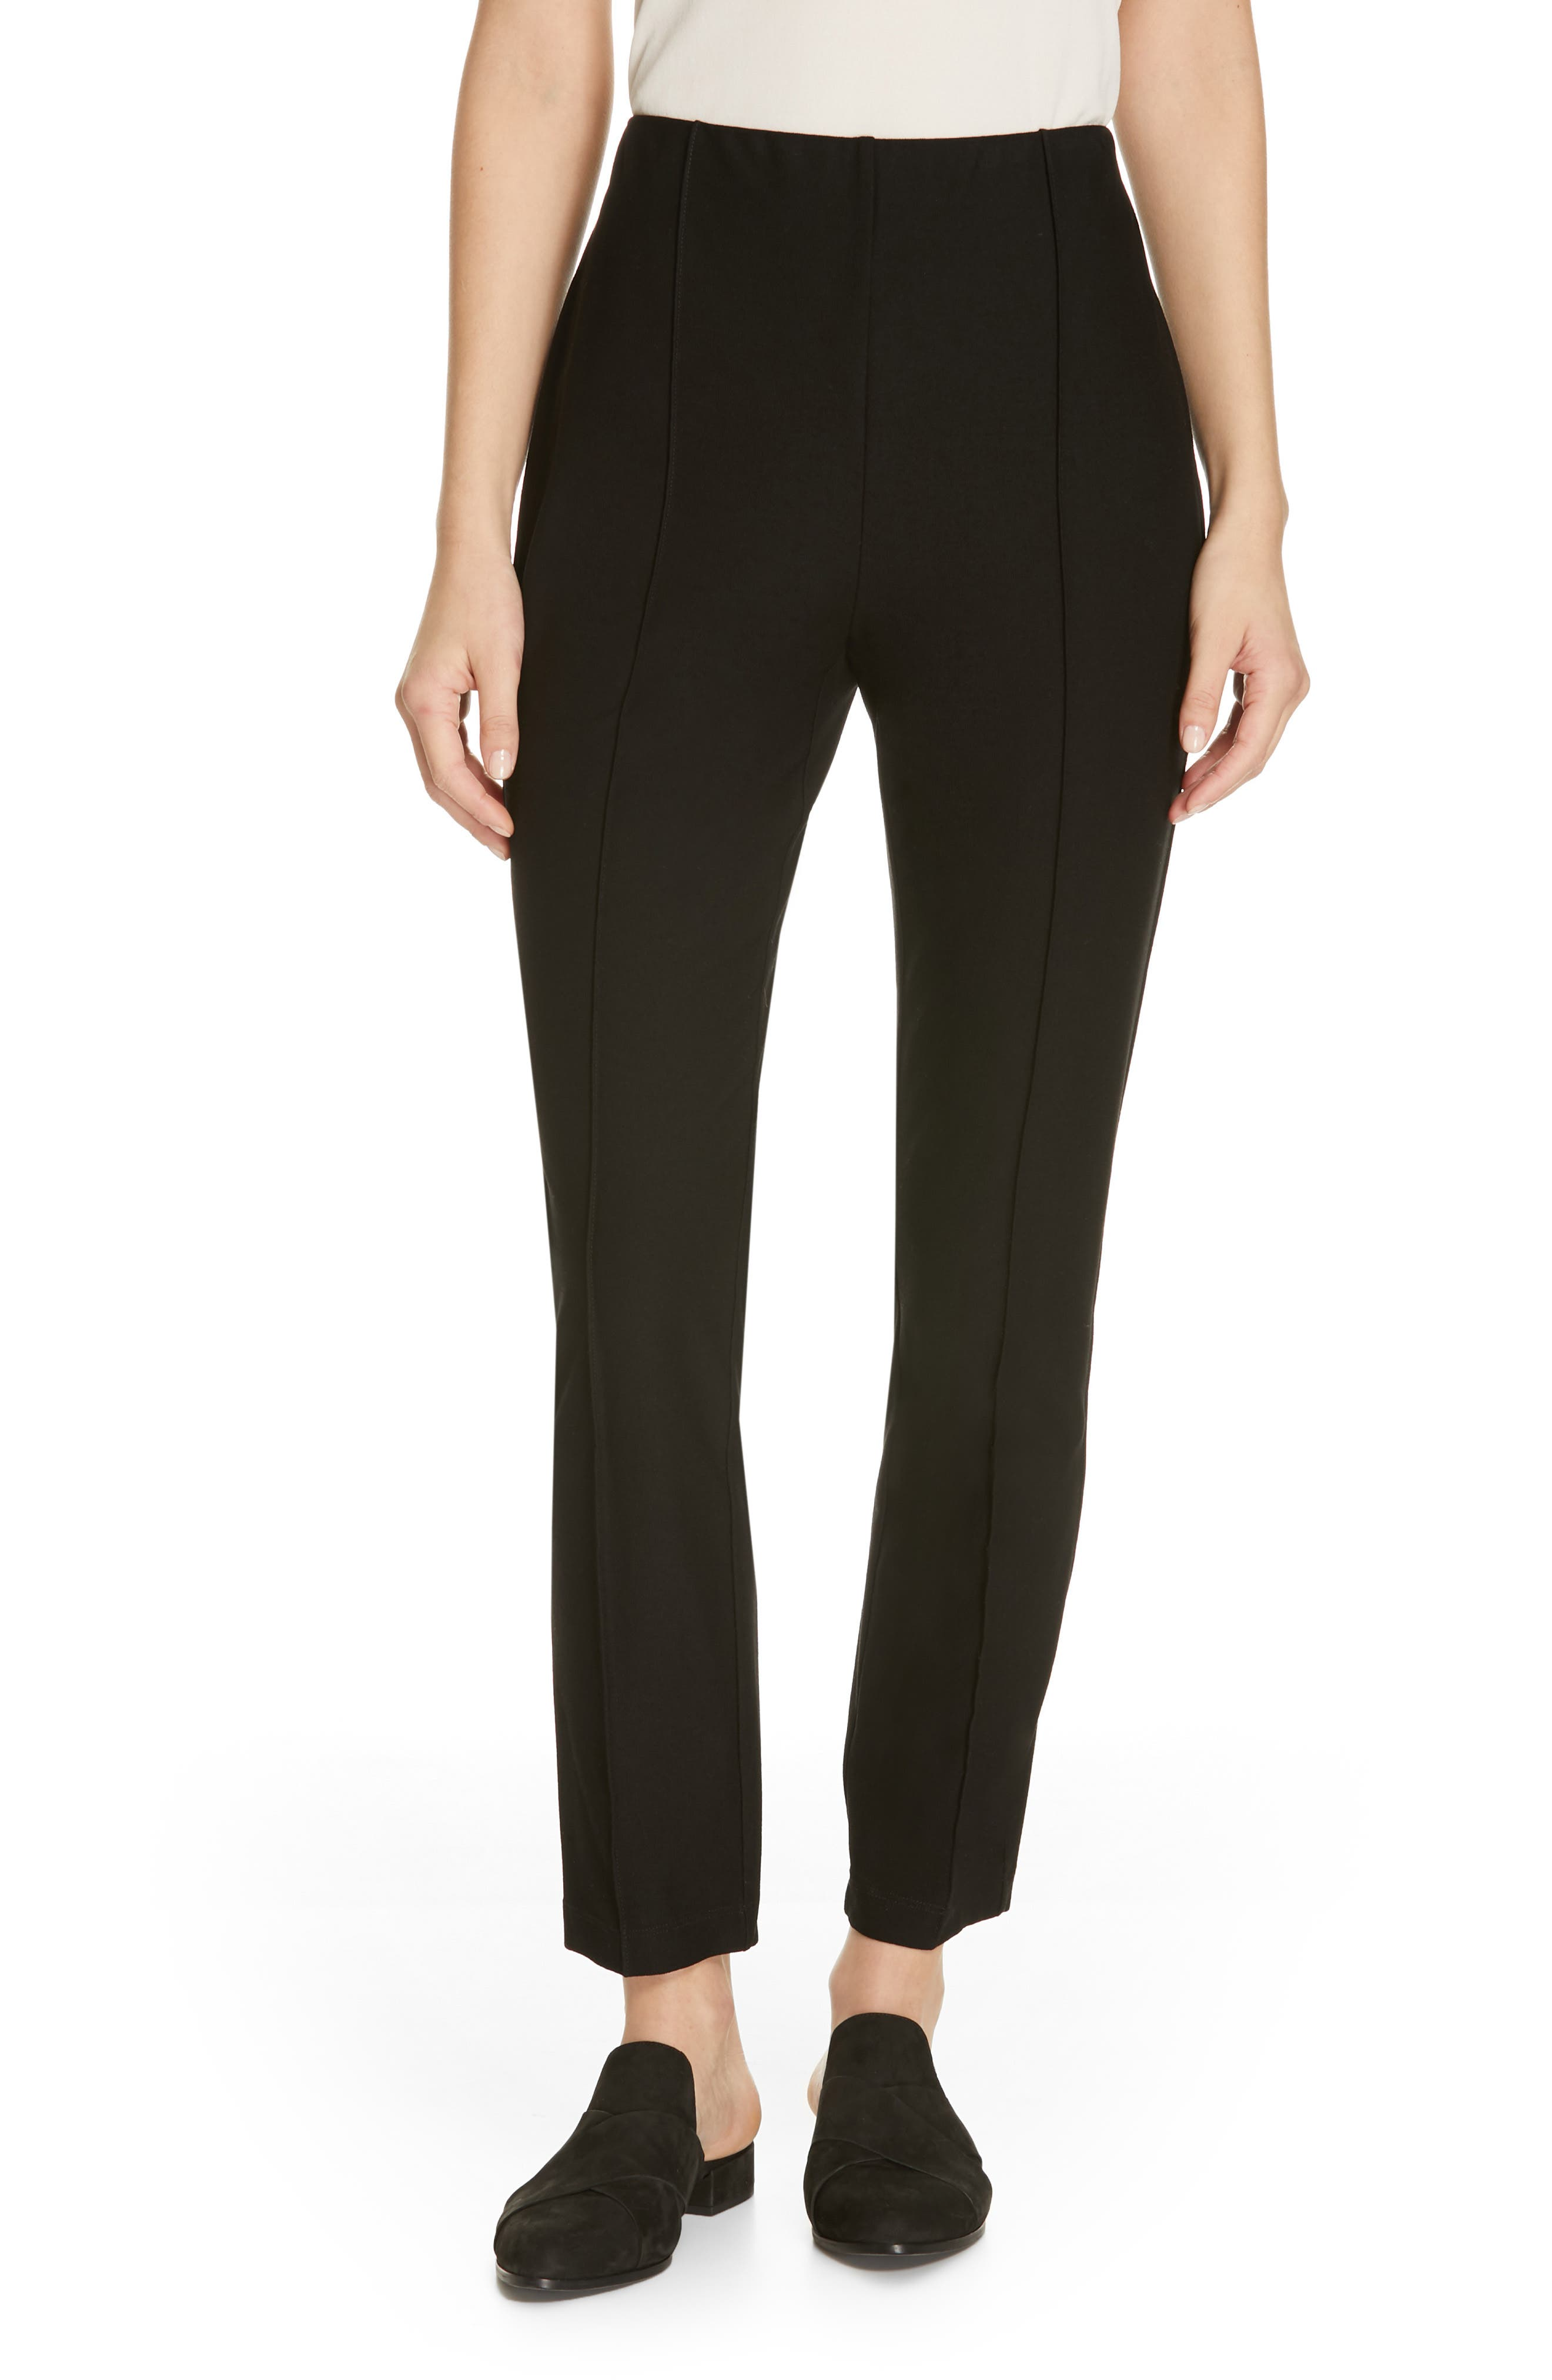 EILEEN FISHER High Waist Slim Ankle Pants, Main, color, 001